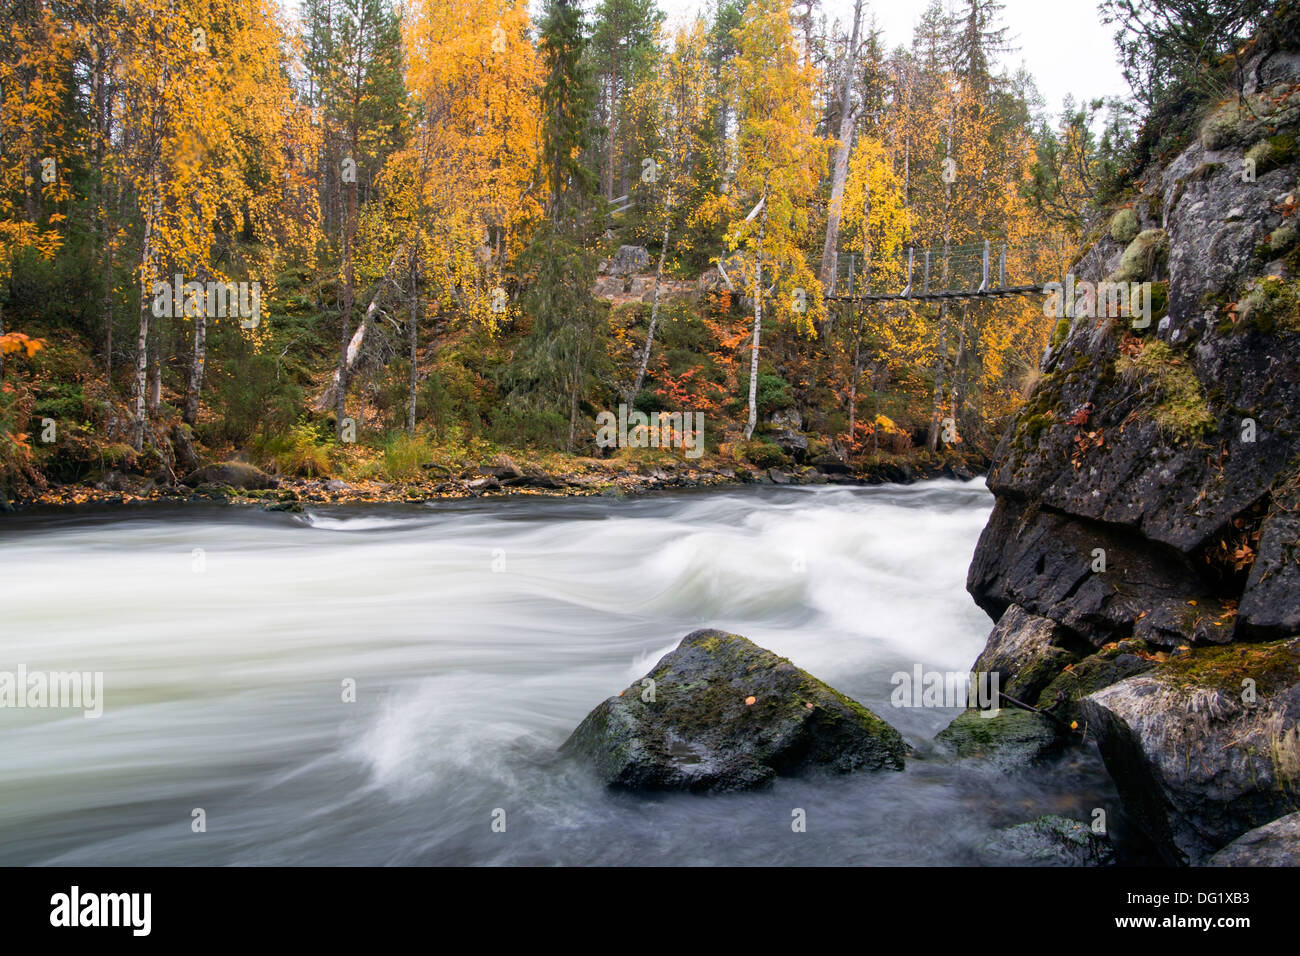 Fast flowing river flow over rocky sturdy coast - Stock Image